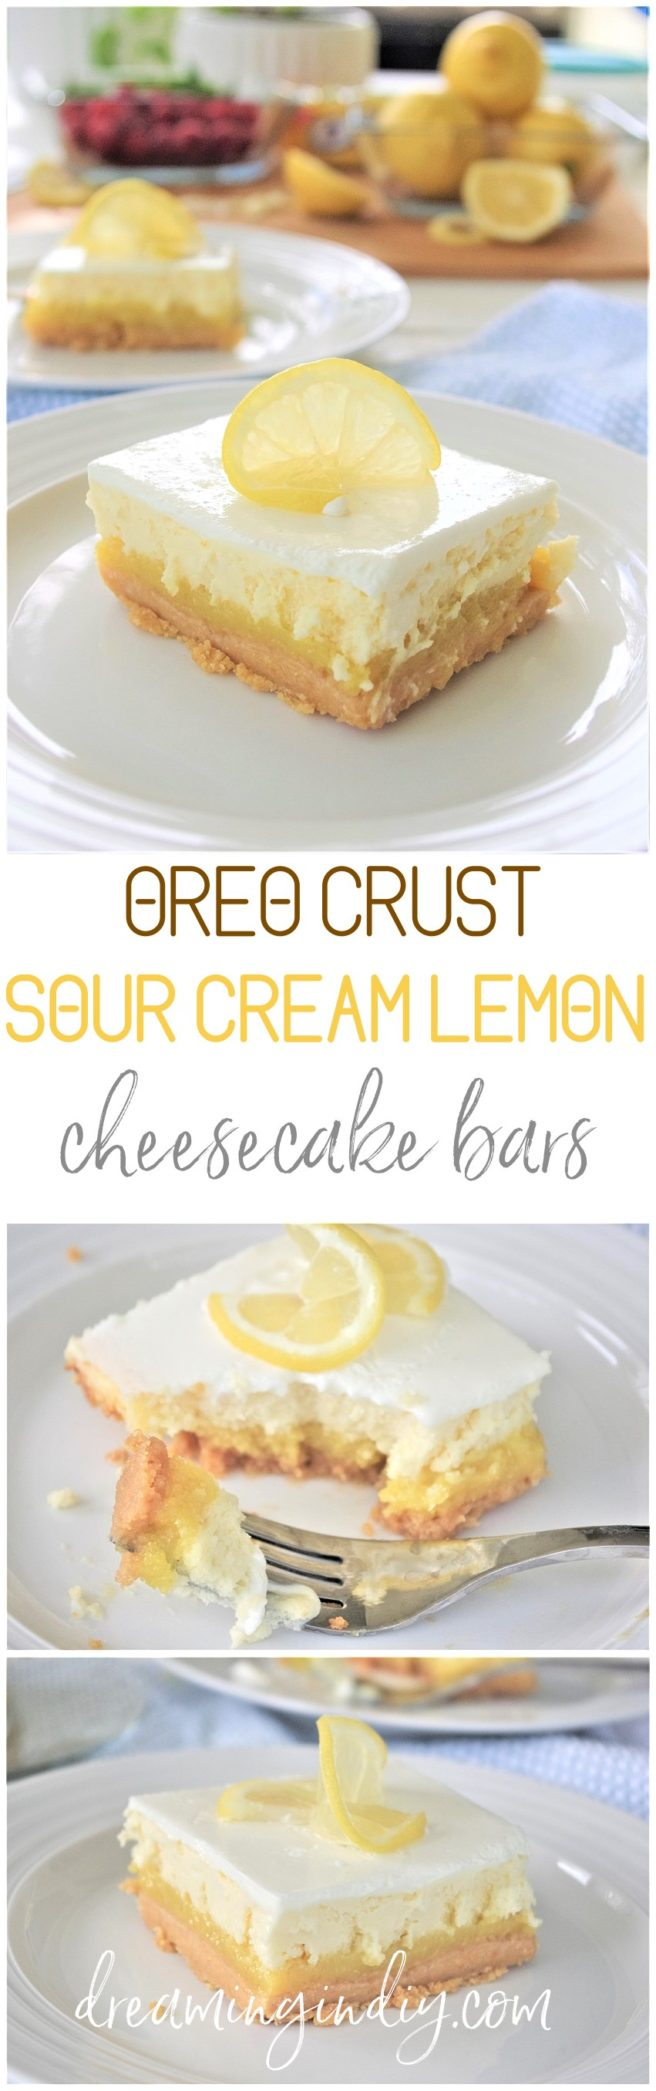 Lemon Sour Cream Cheesecake Dessert Bars with Lemon Oreo Crust - Easy Layered Treats Yummy Recipe via Dreaming in DIY #lemondesserts #lemonbars #easylemonbars #lemoncheesecakebars #cheesecakebars #easydesserts #simpledesserts #simplerecipes #simpledessertrecipes